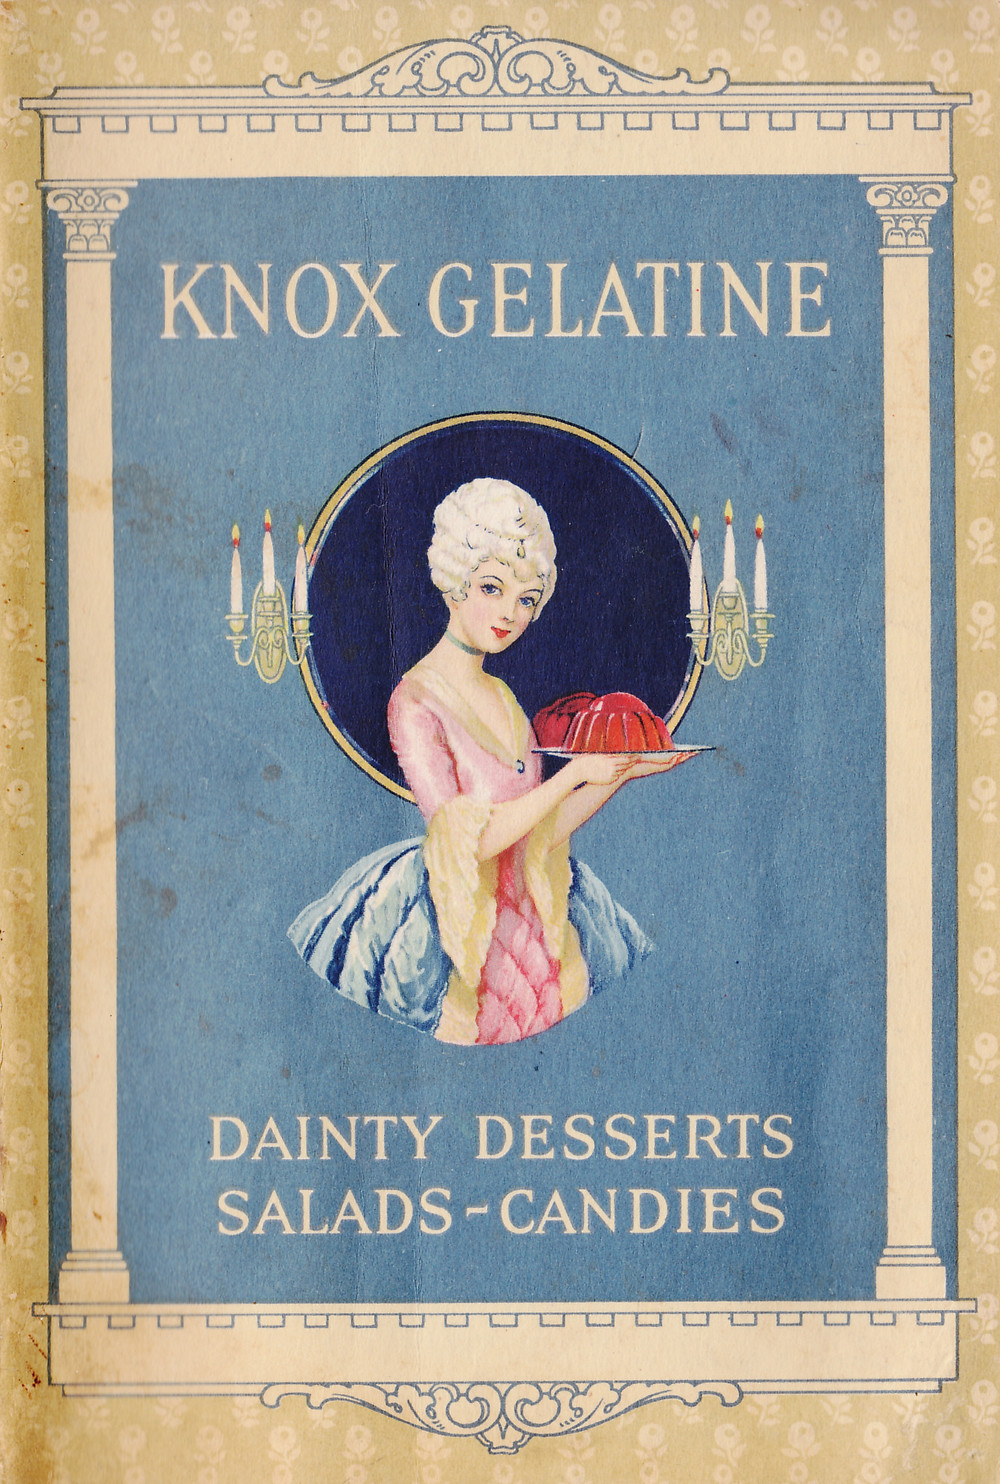 Cover of Knox Gelatine recipe booklet, featuring an illustration of a woman dressed in Rococo fashion framed by Neoclassical pillars